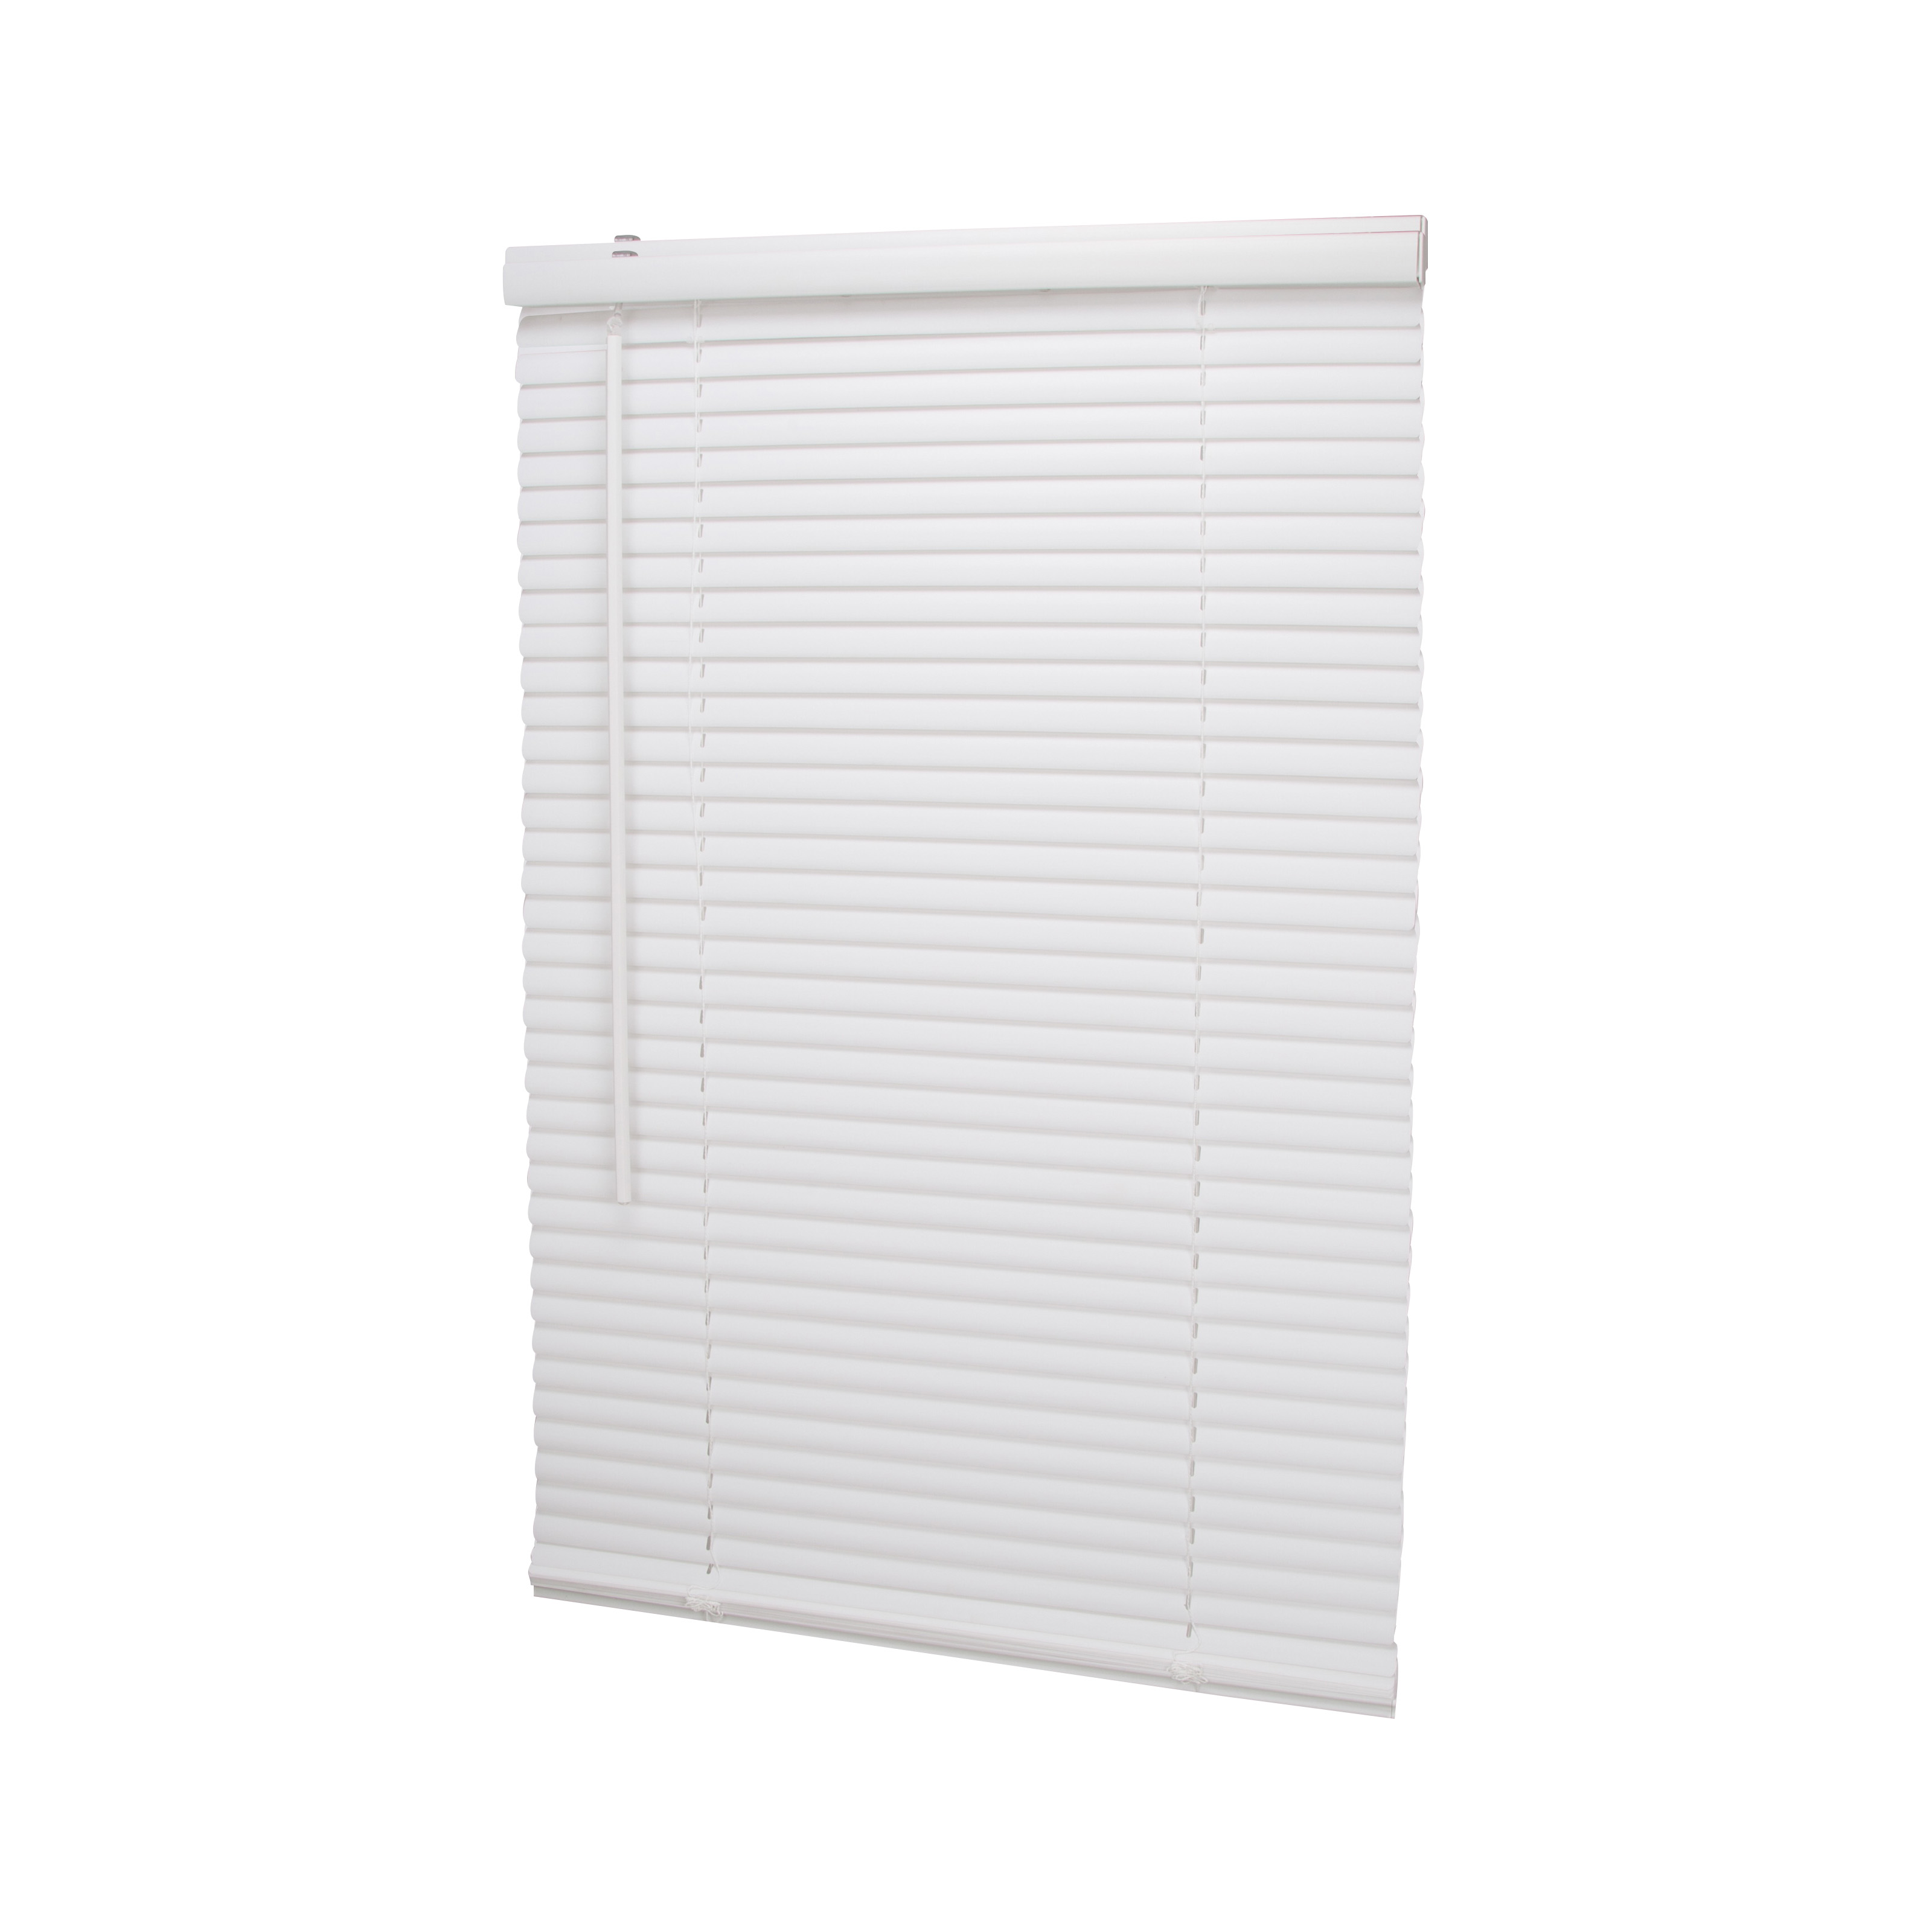 Picture of Simple Spaces PVCMB-0A Cordless Mini Blind, 42 in L, 23 in W, Vinyl, White